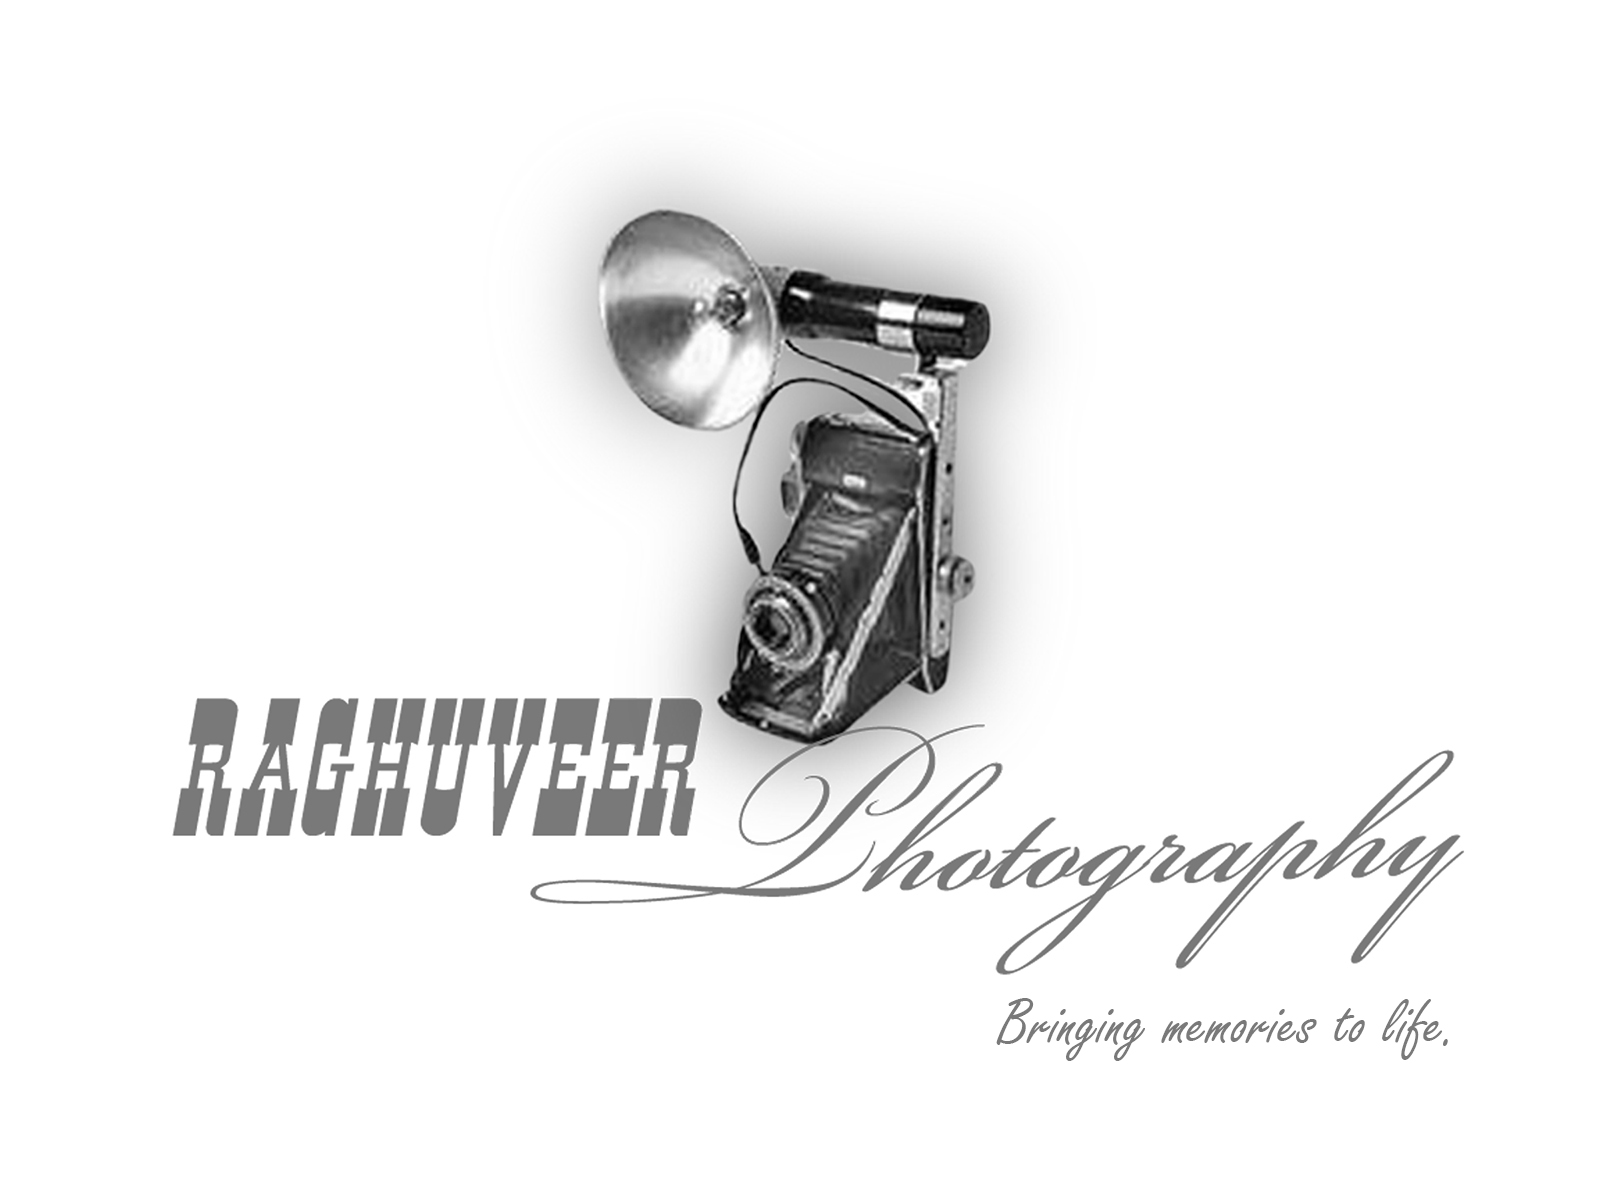 RAGHUVEER PHOTOGRAPHY